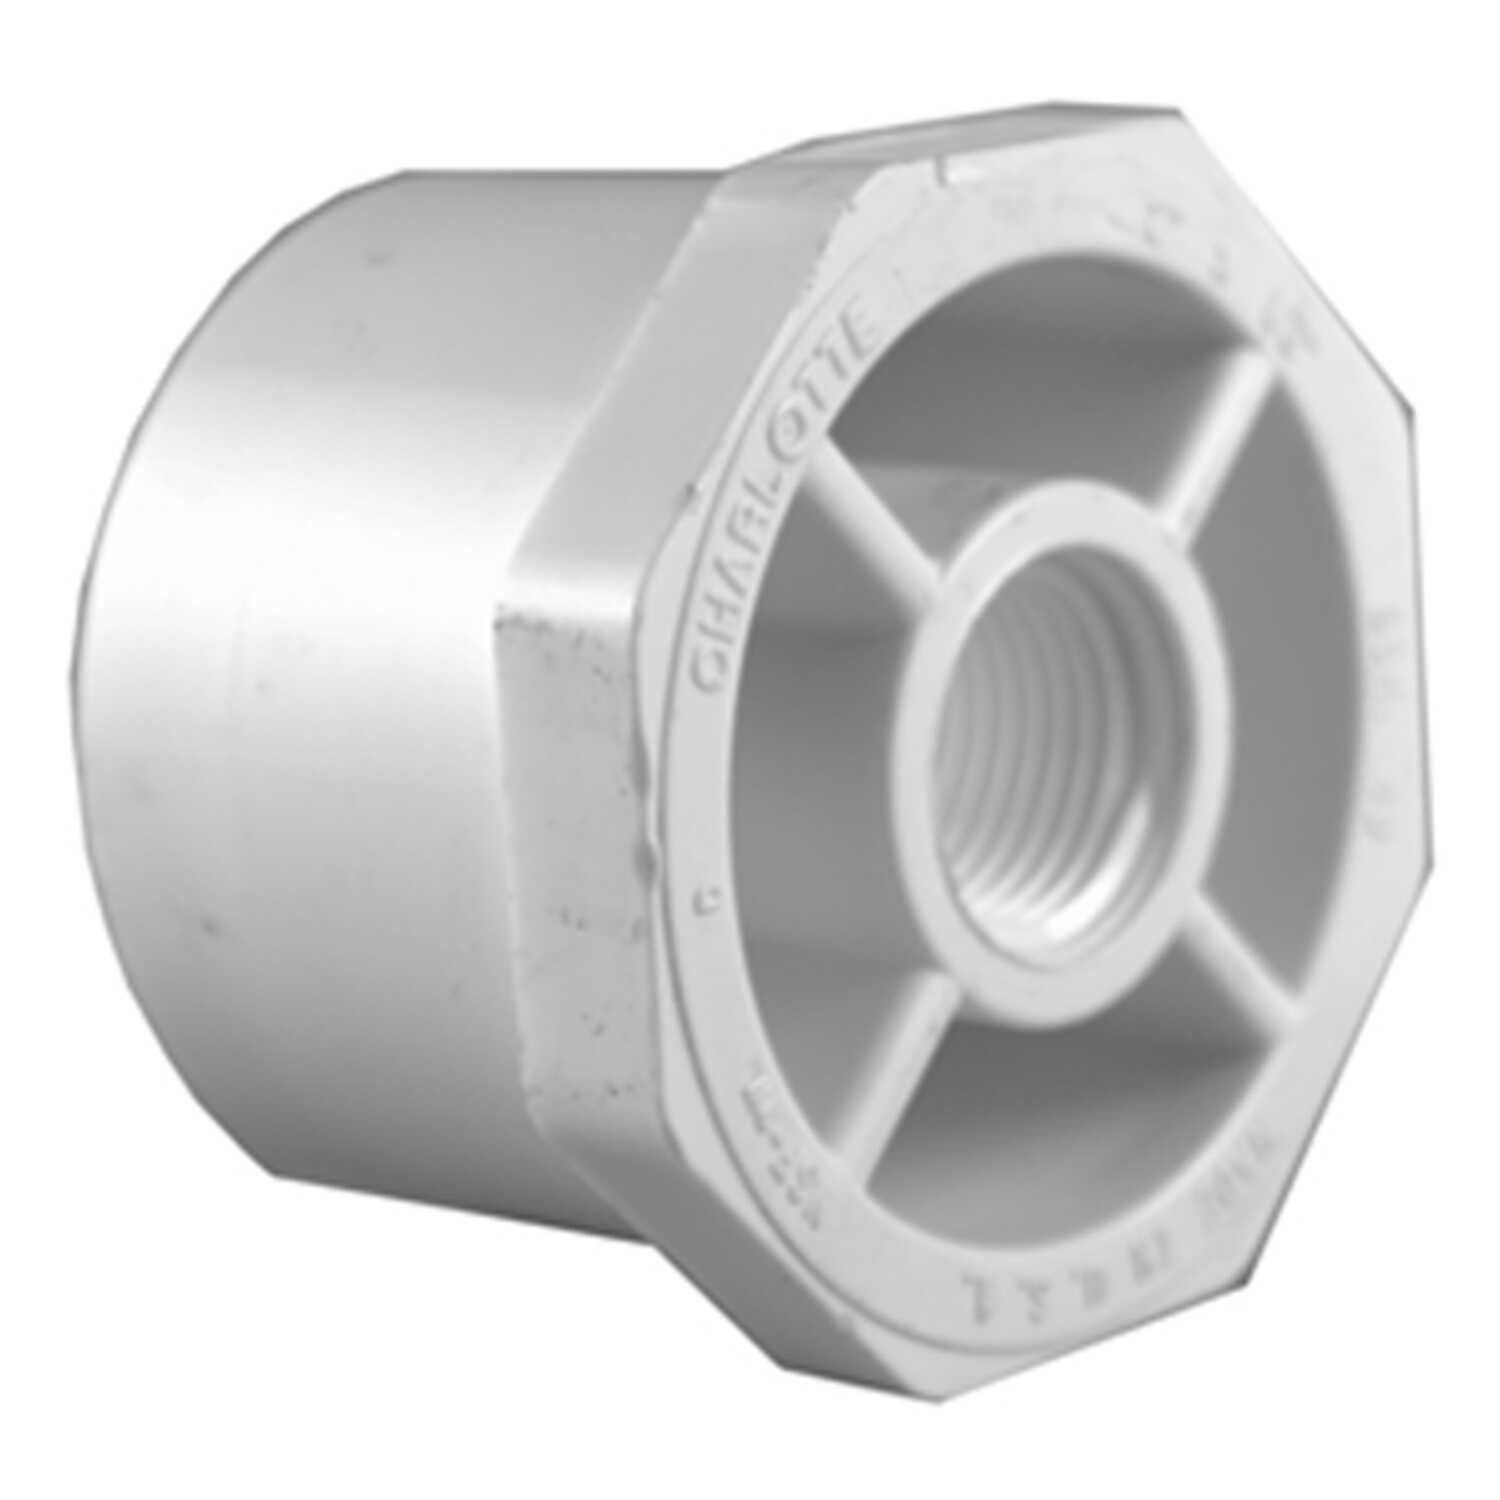 Charlotte Pipe  Schedule 40  1-1/2 in. Spigot   x 3/4 in. Dia. FPT  PVC  Reducing Bushing